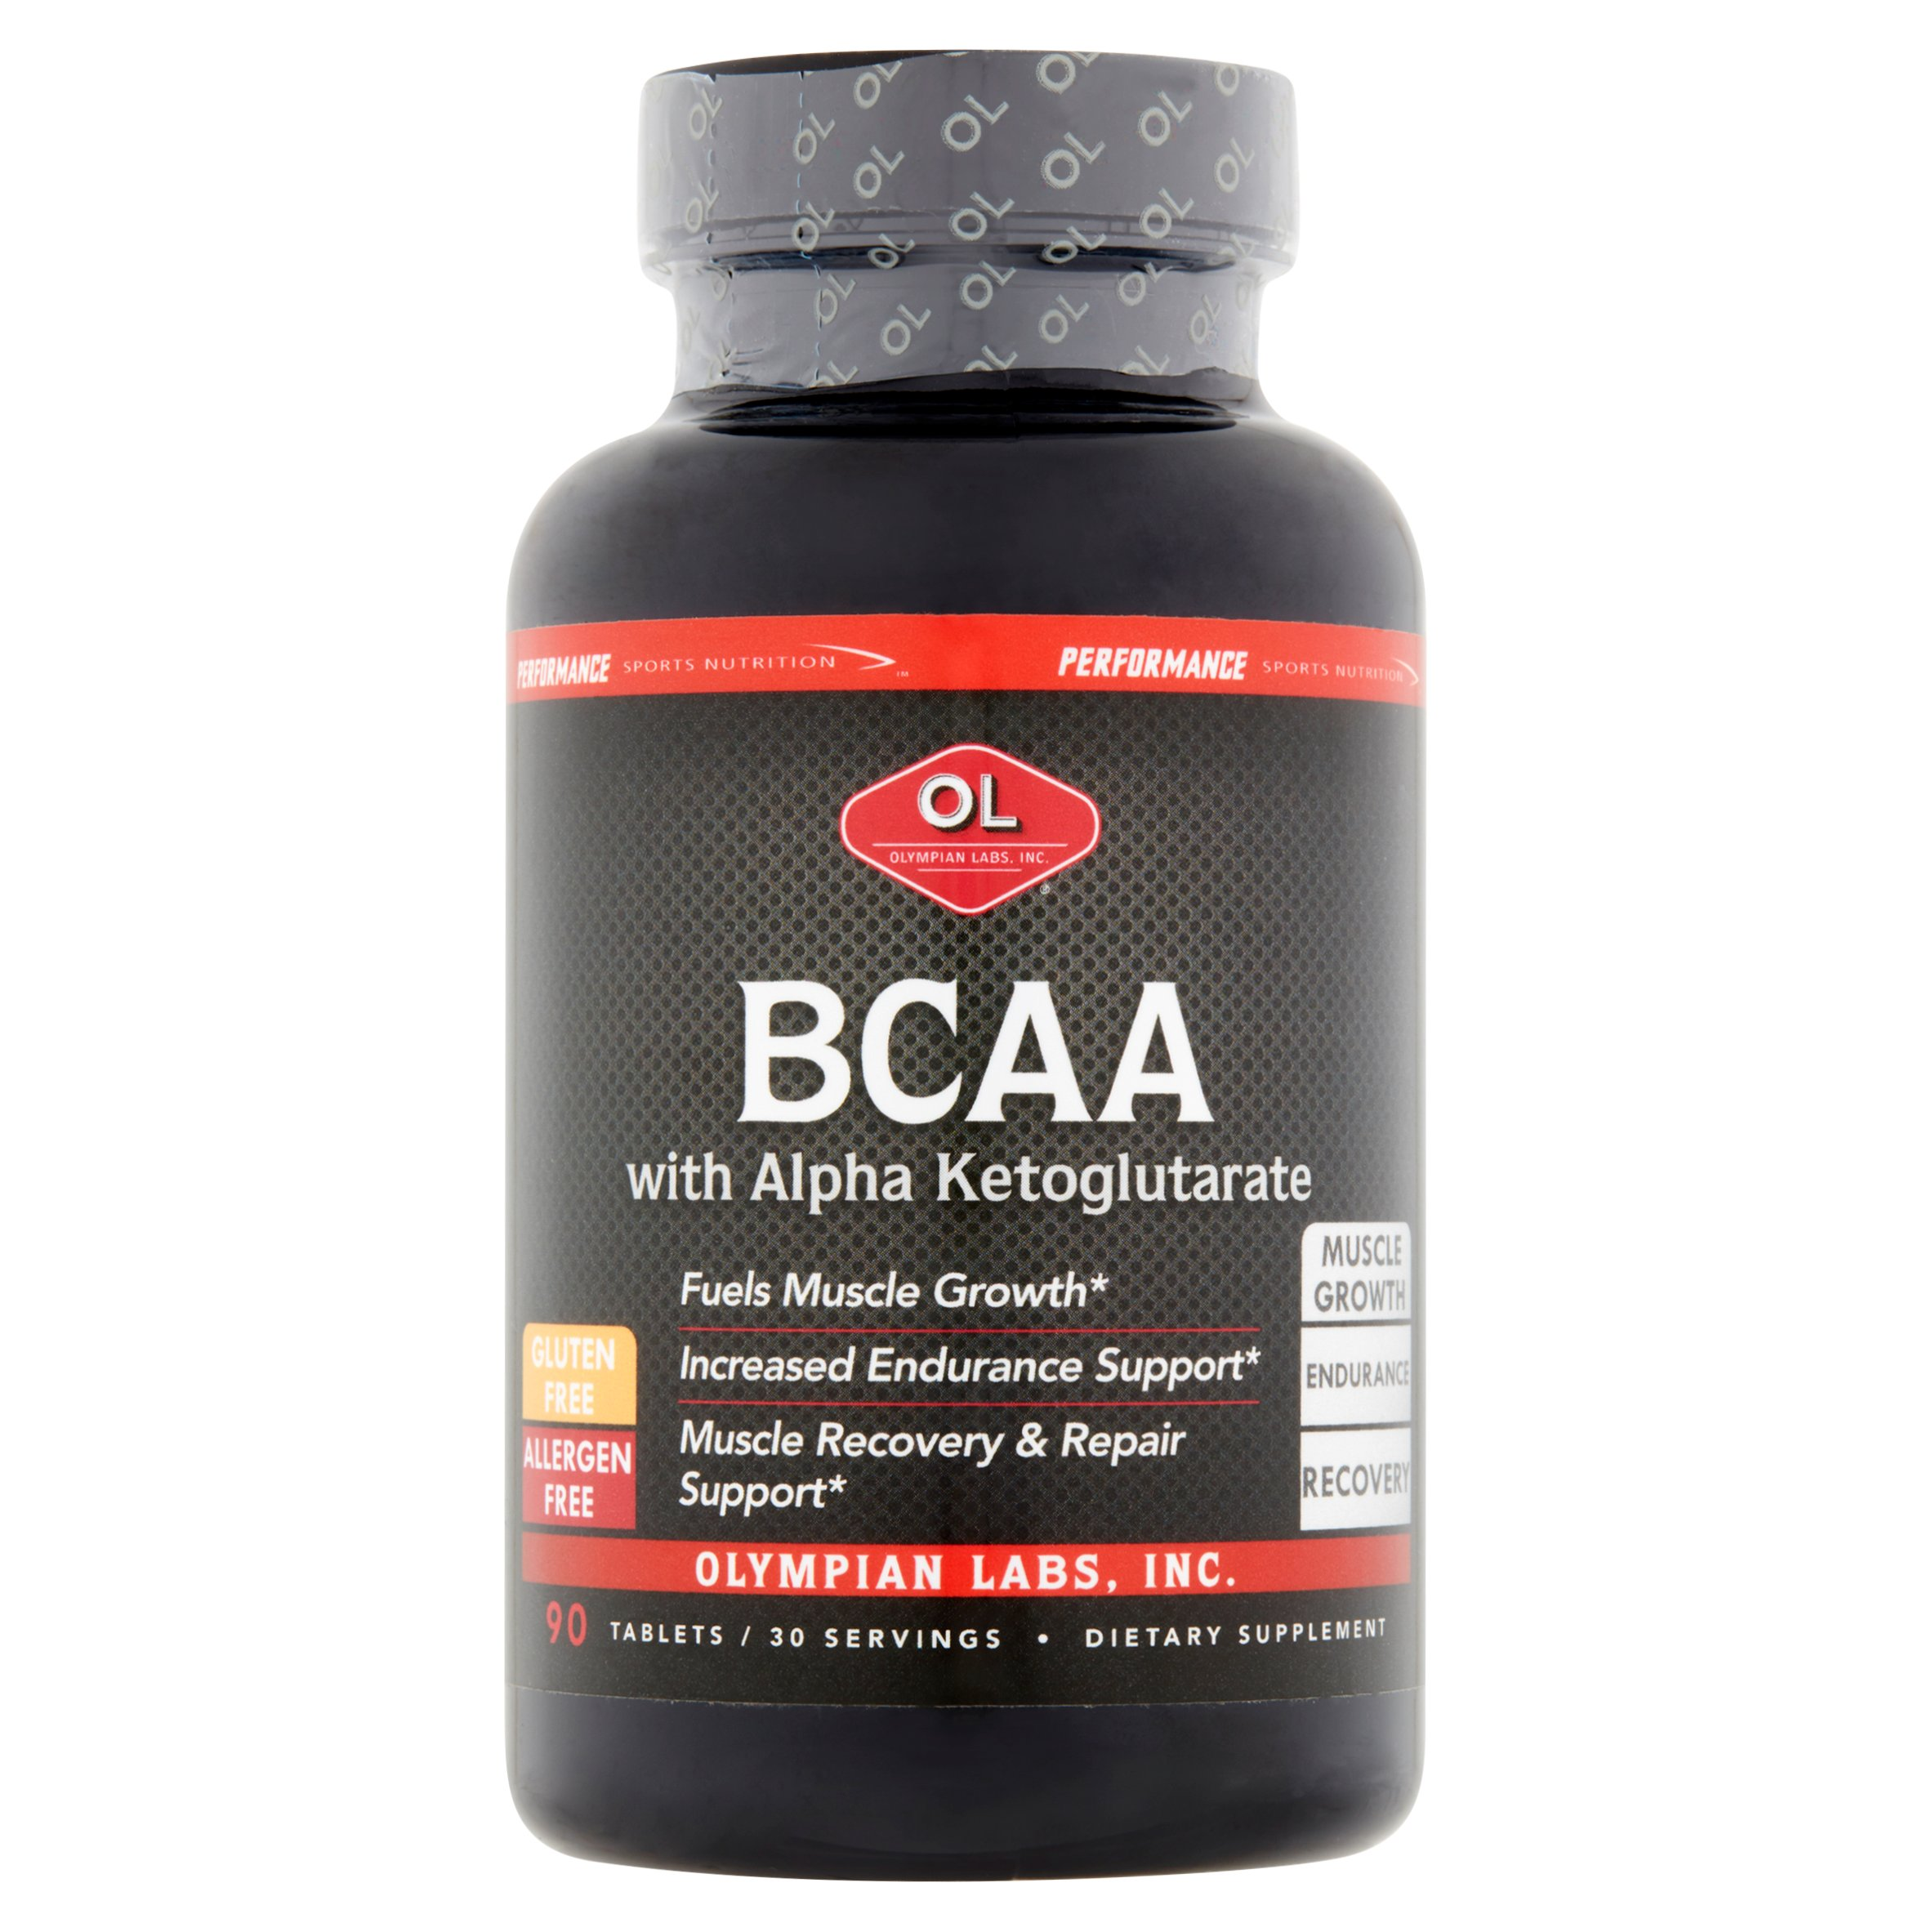 Olympian Labs BCAA with Alpha Ketoglutarate Tablets, 90 count